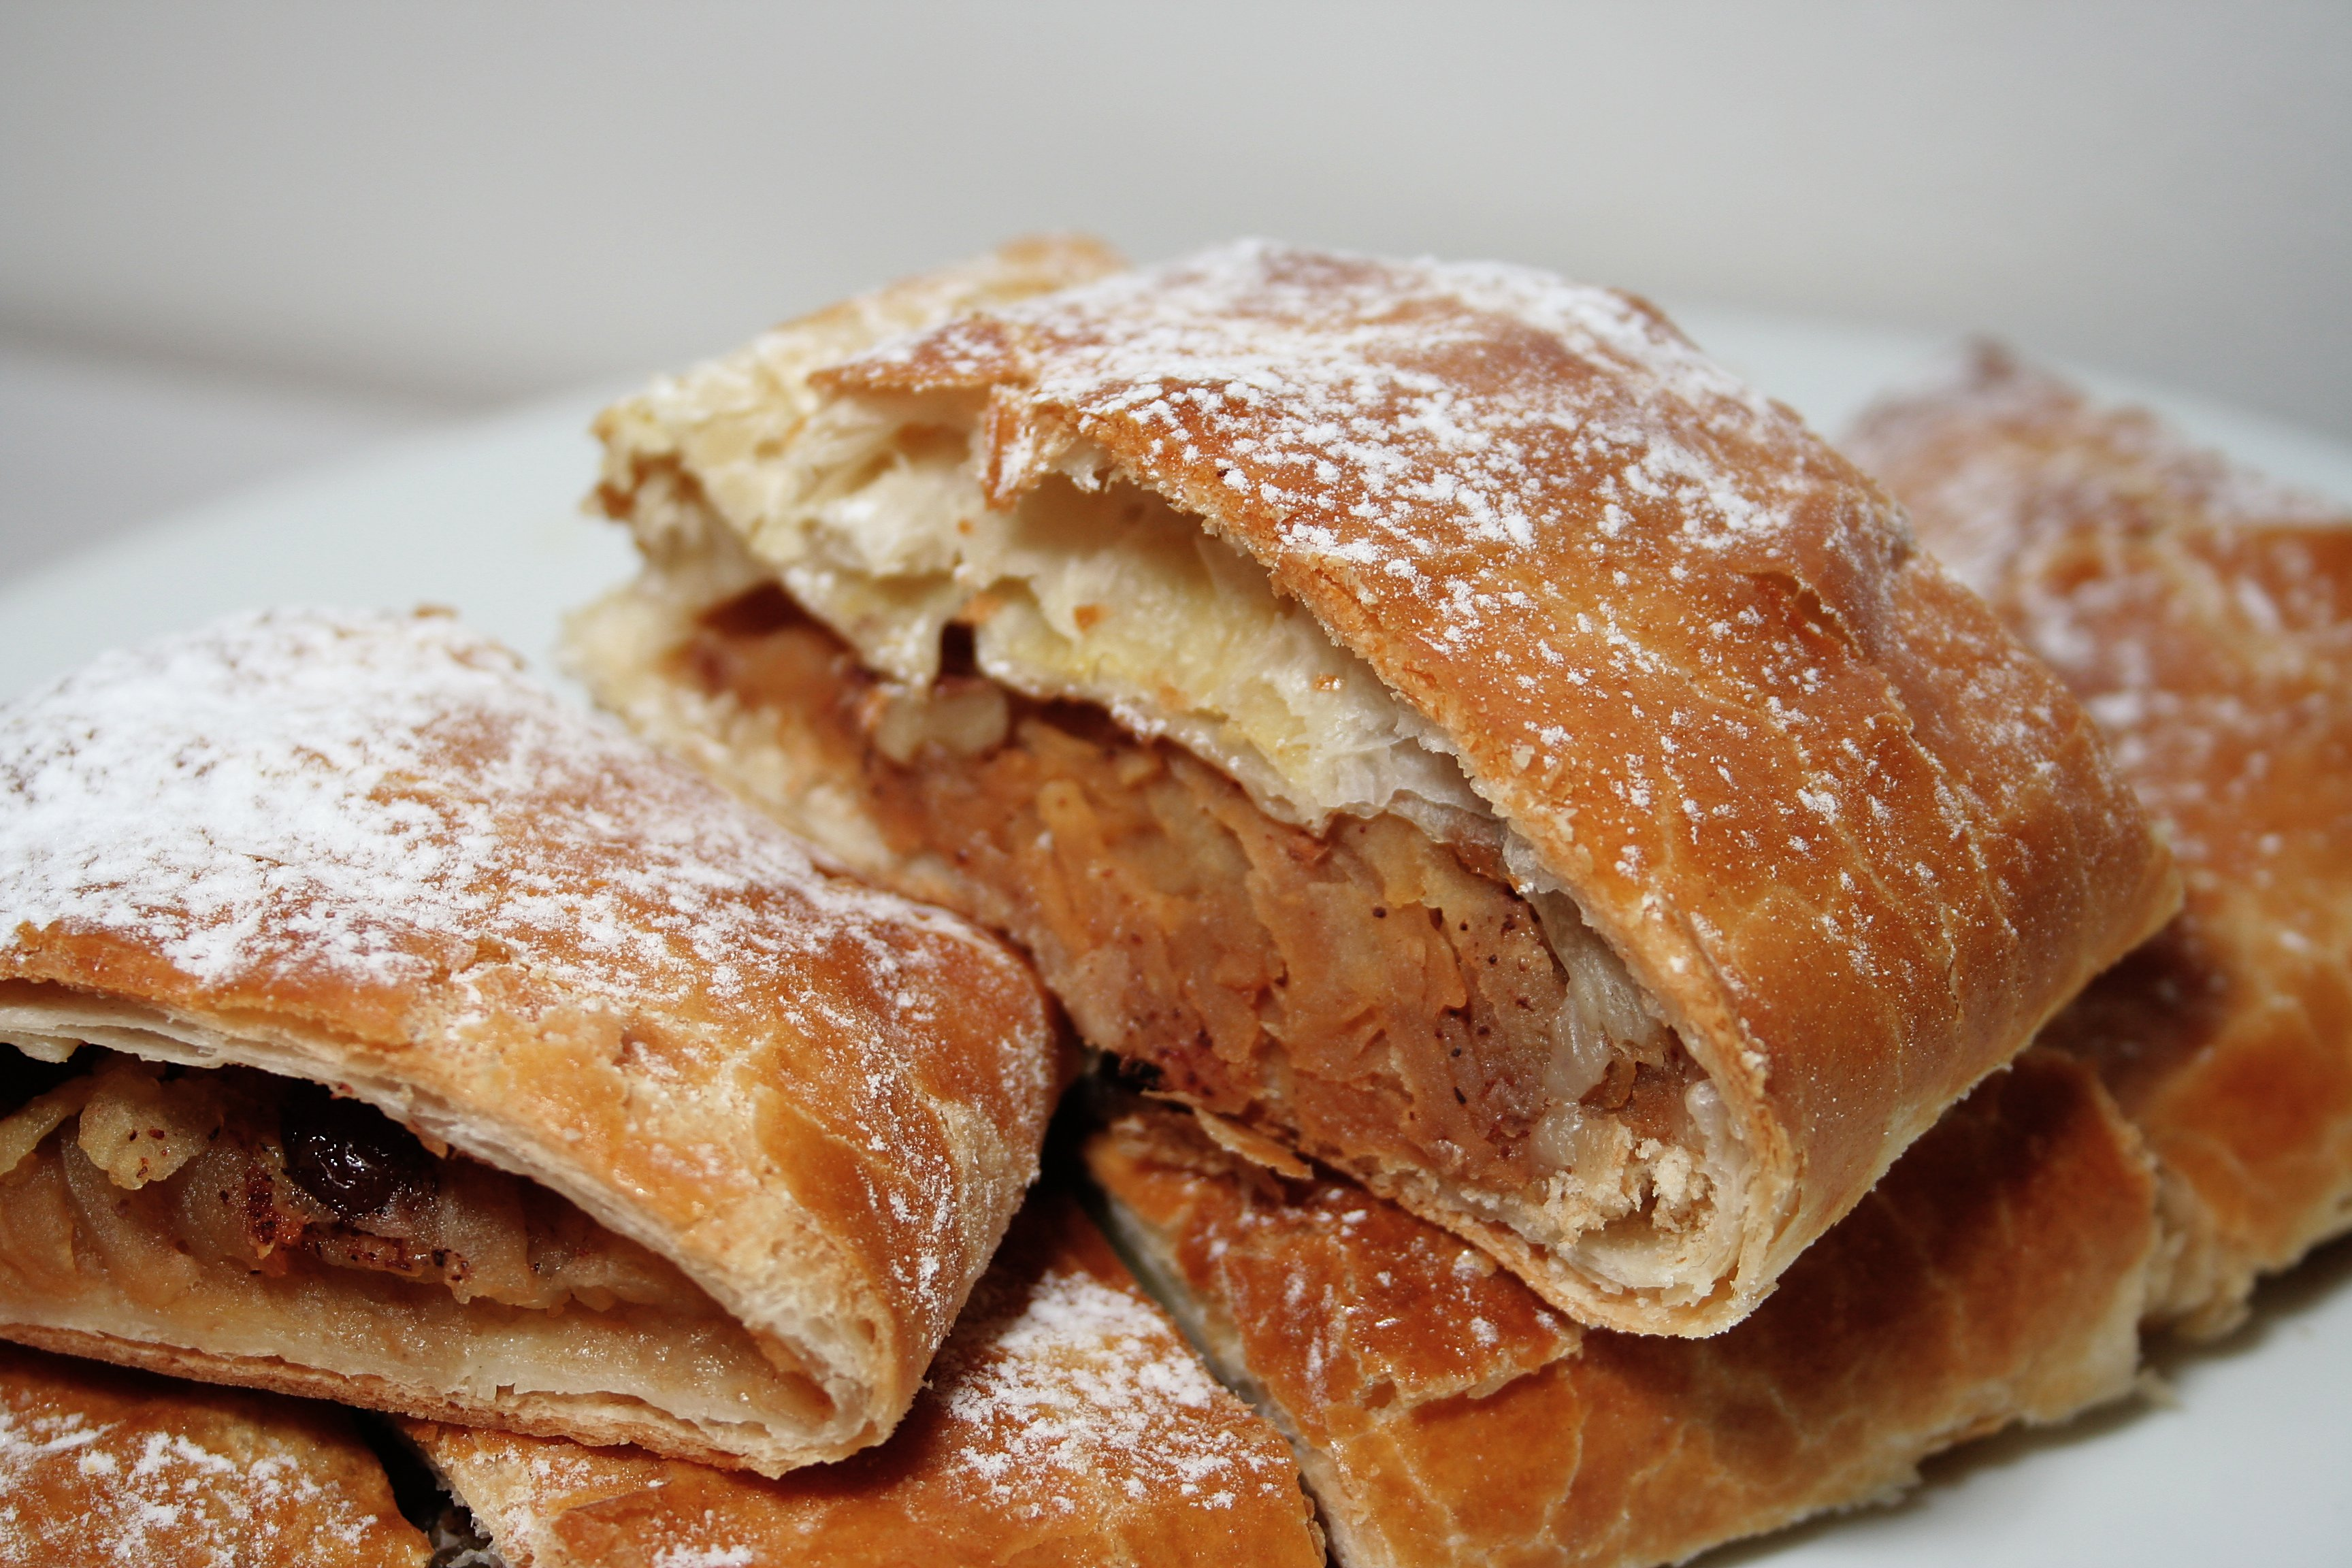 https://upload.wikimedia.org/wikipedia/commons/4/40/Strudel.jpg